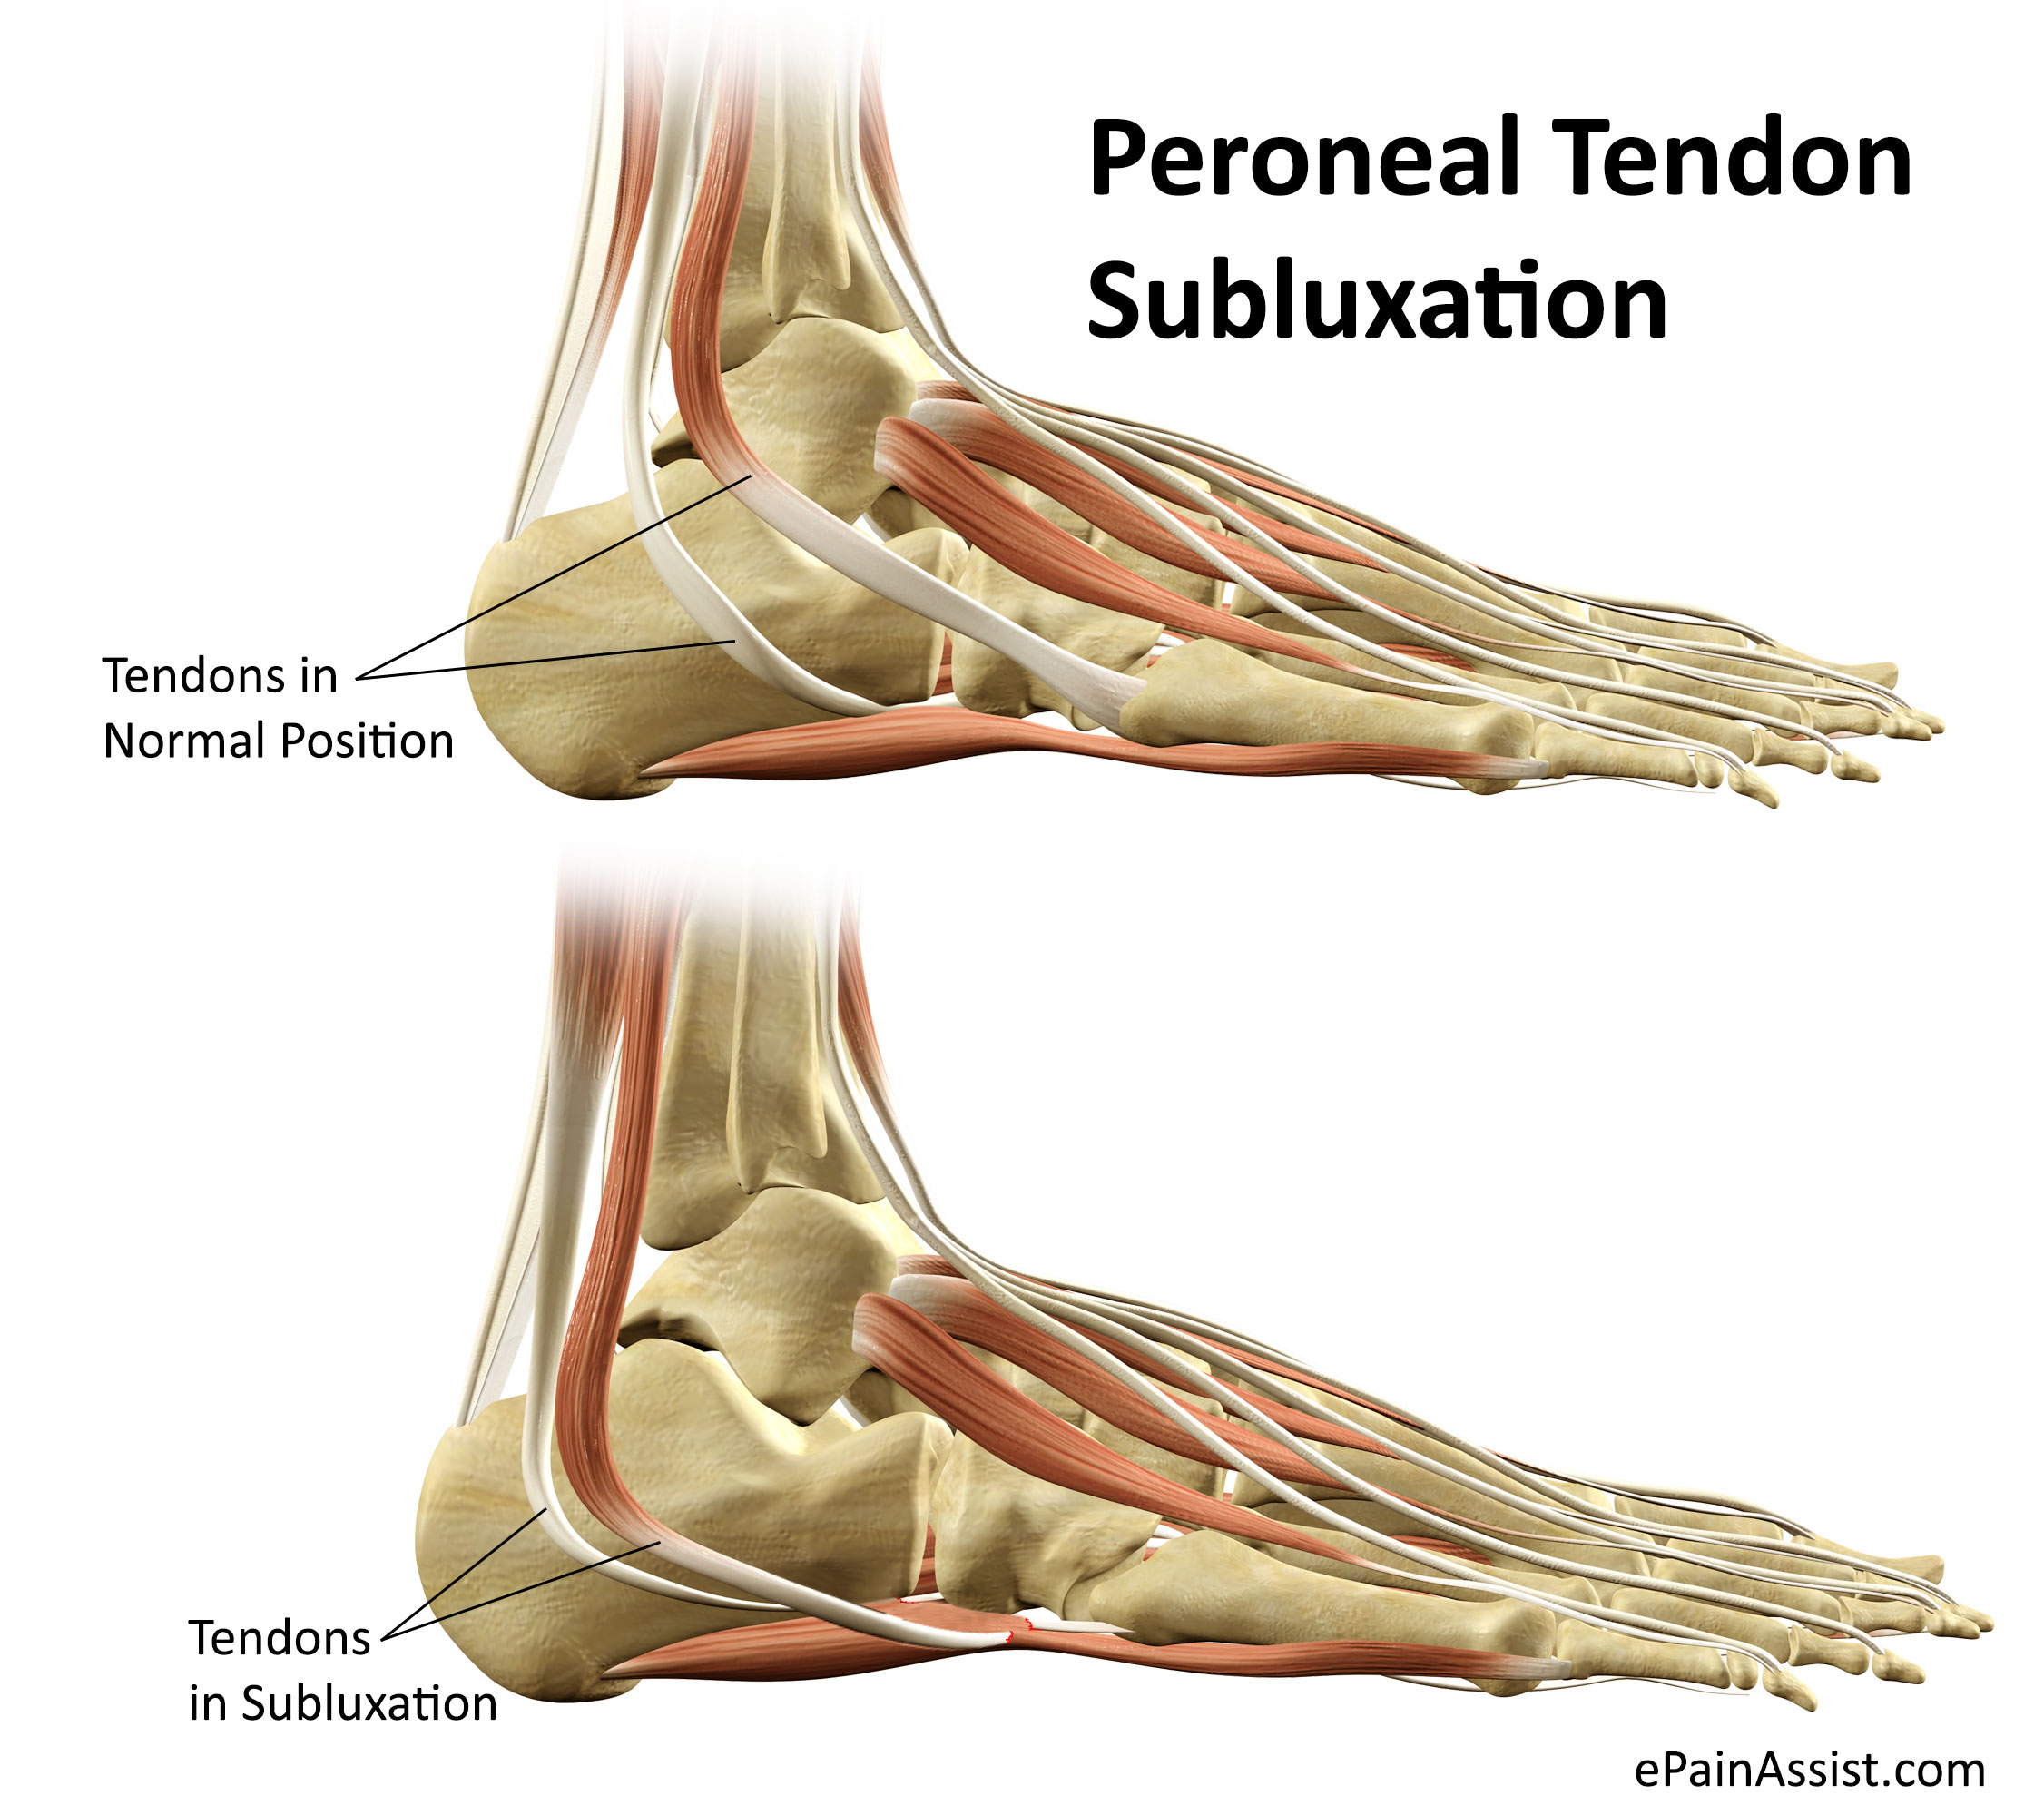 Peroneal Tendon Subluxation or Dislocation